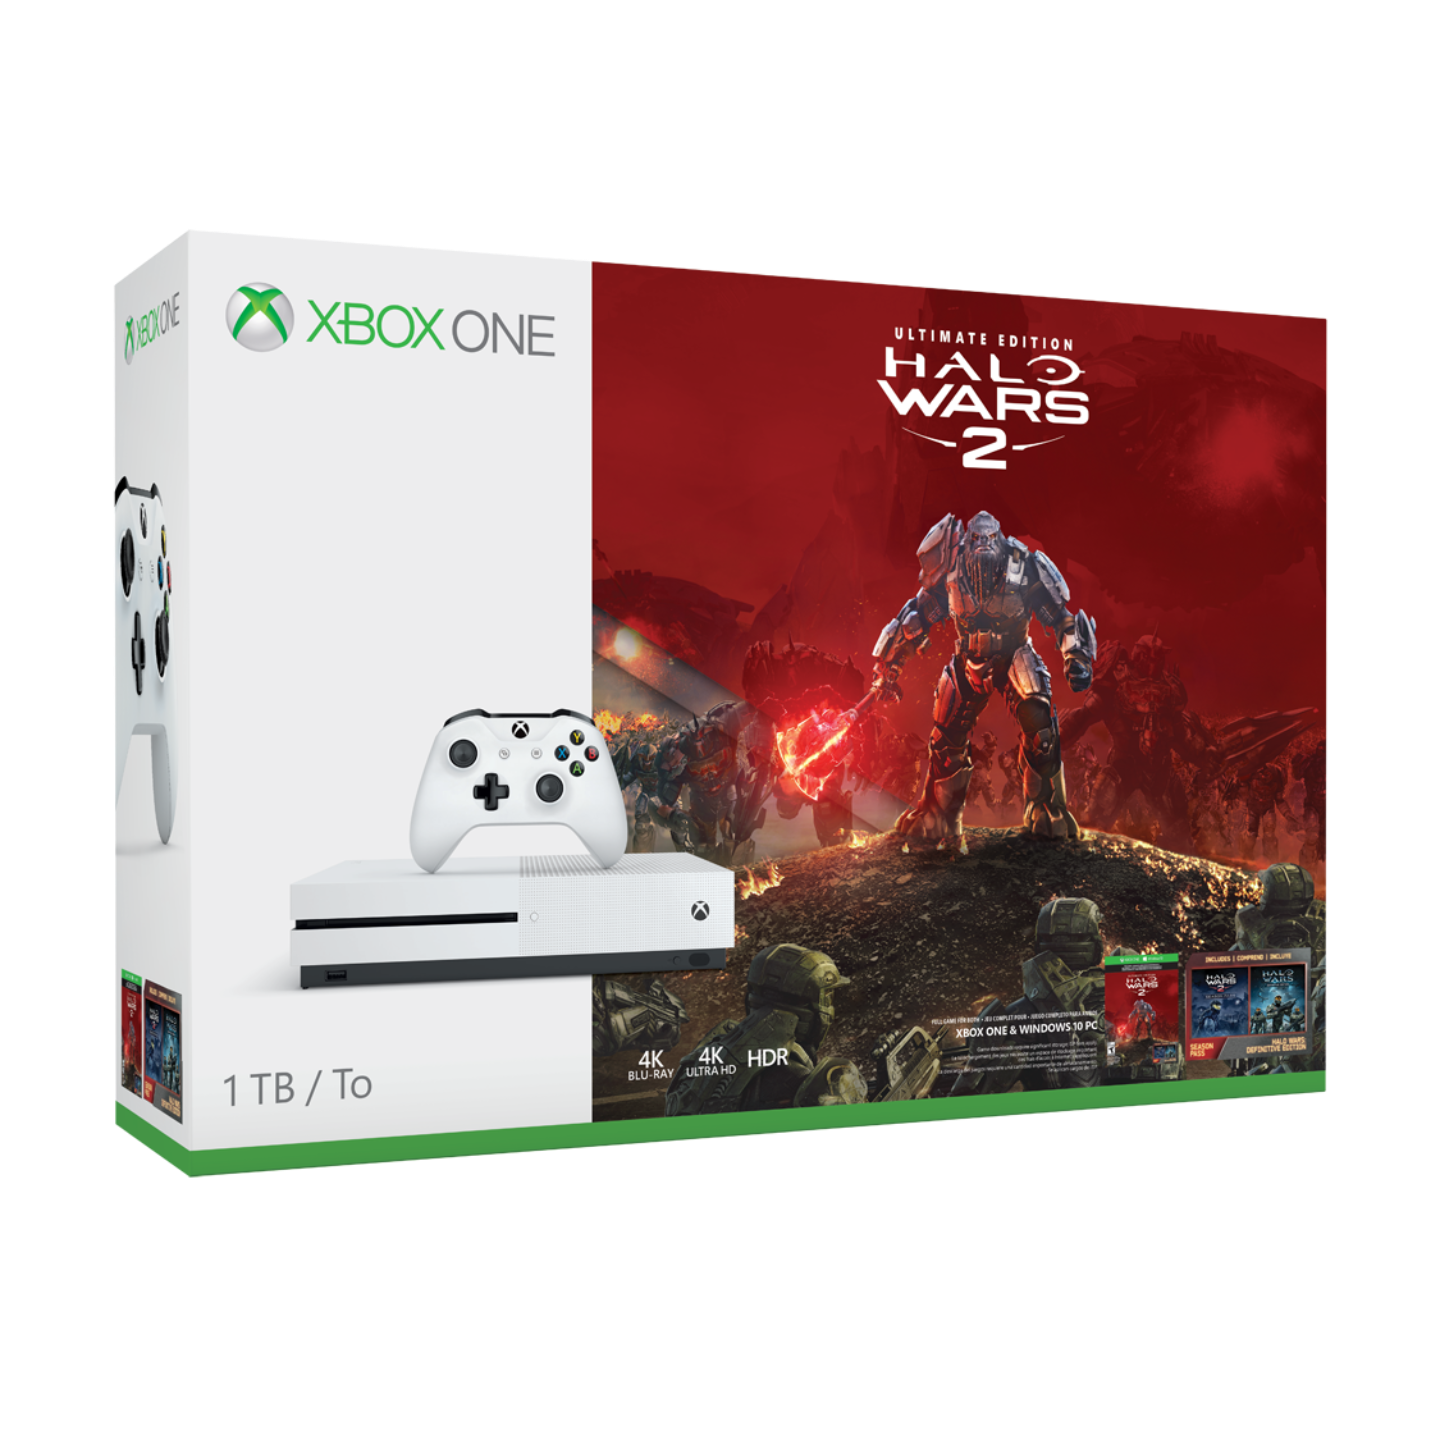 Microsoft XBox One 1TB S Console (Choice of 1 game : Battlefield 1, Forza or Halo Wars 2)